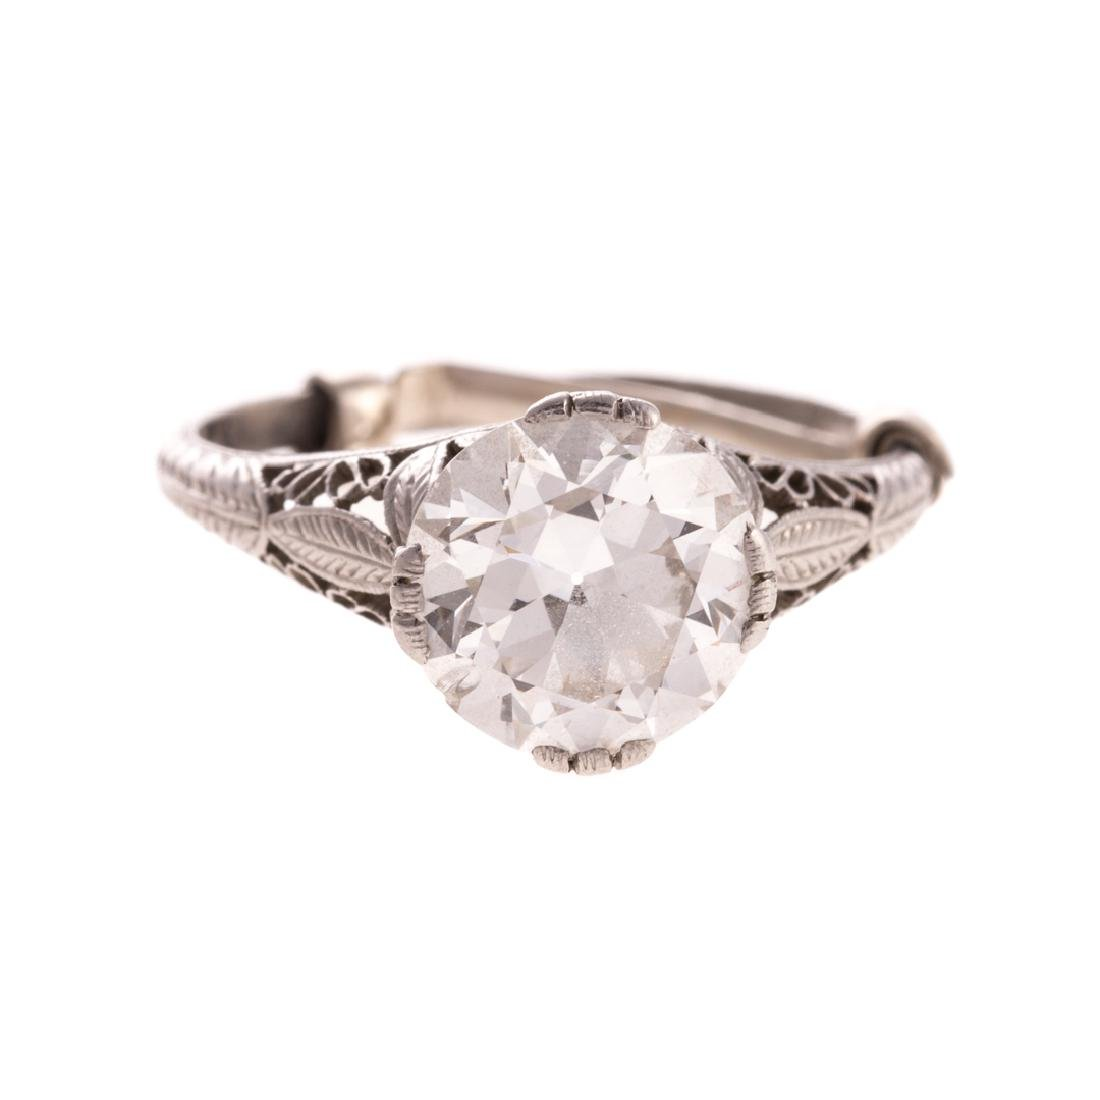 A Lady's 2.70 cts. Diamond Solitaire Filigree Ring